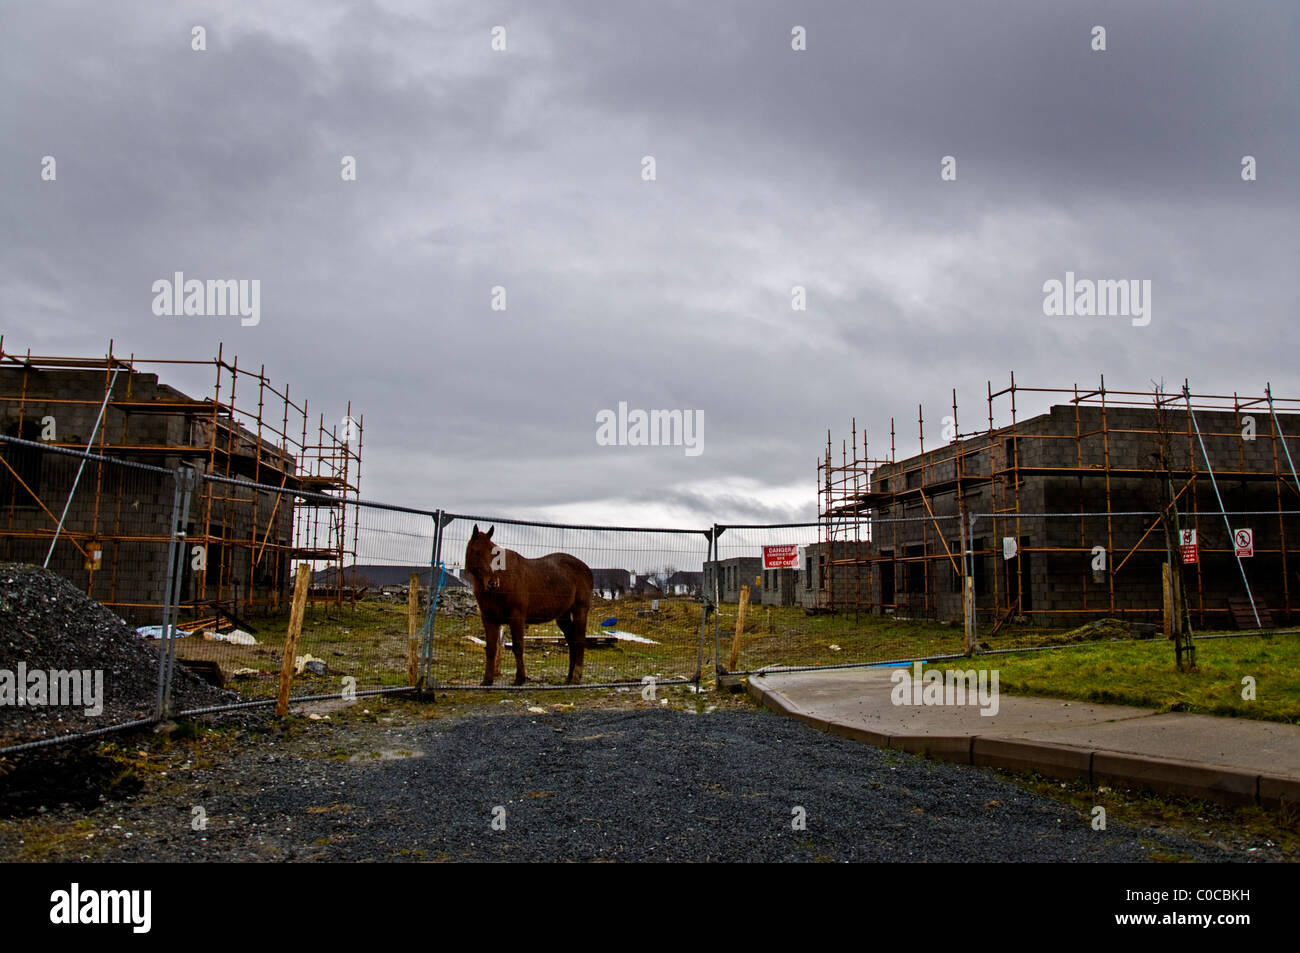 A horse stands on a derelict abandoned building site in rural Ireland - Stock Image